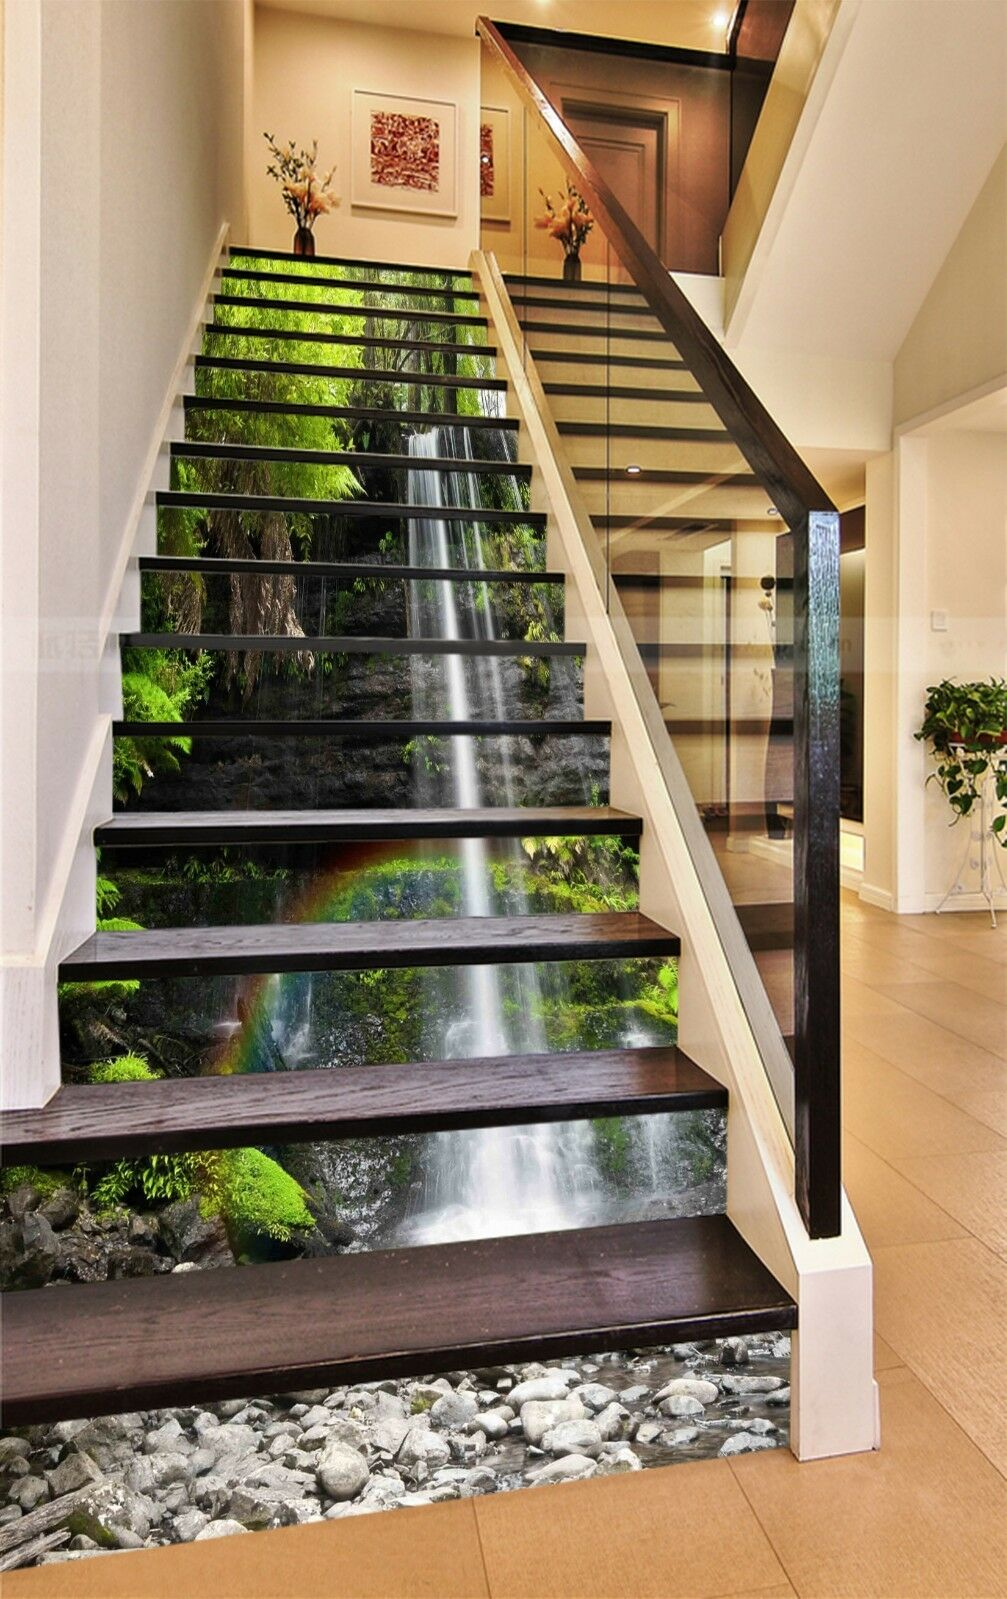 3D Waterfall River Stair Risers Decoration Photo Mural Vinyl Decal  Wallpaper AU 1 Of 5 3D Waterfall River Stair Risers ...